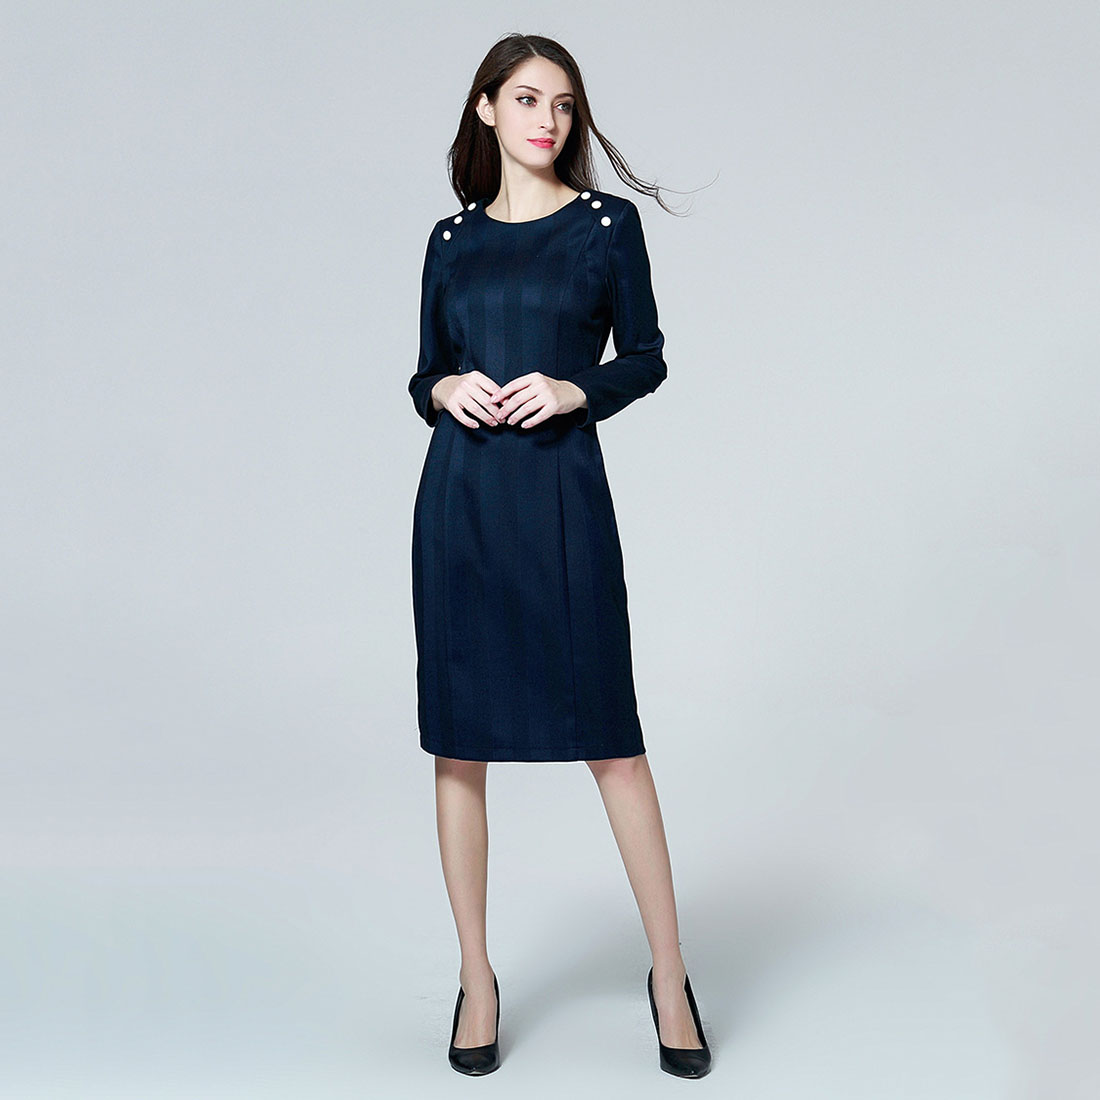 Marina Kaneva New Fashion Elegant Plus Size Dress Female ...